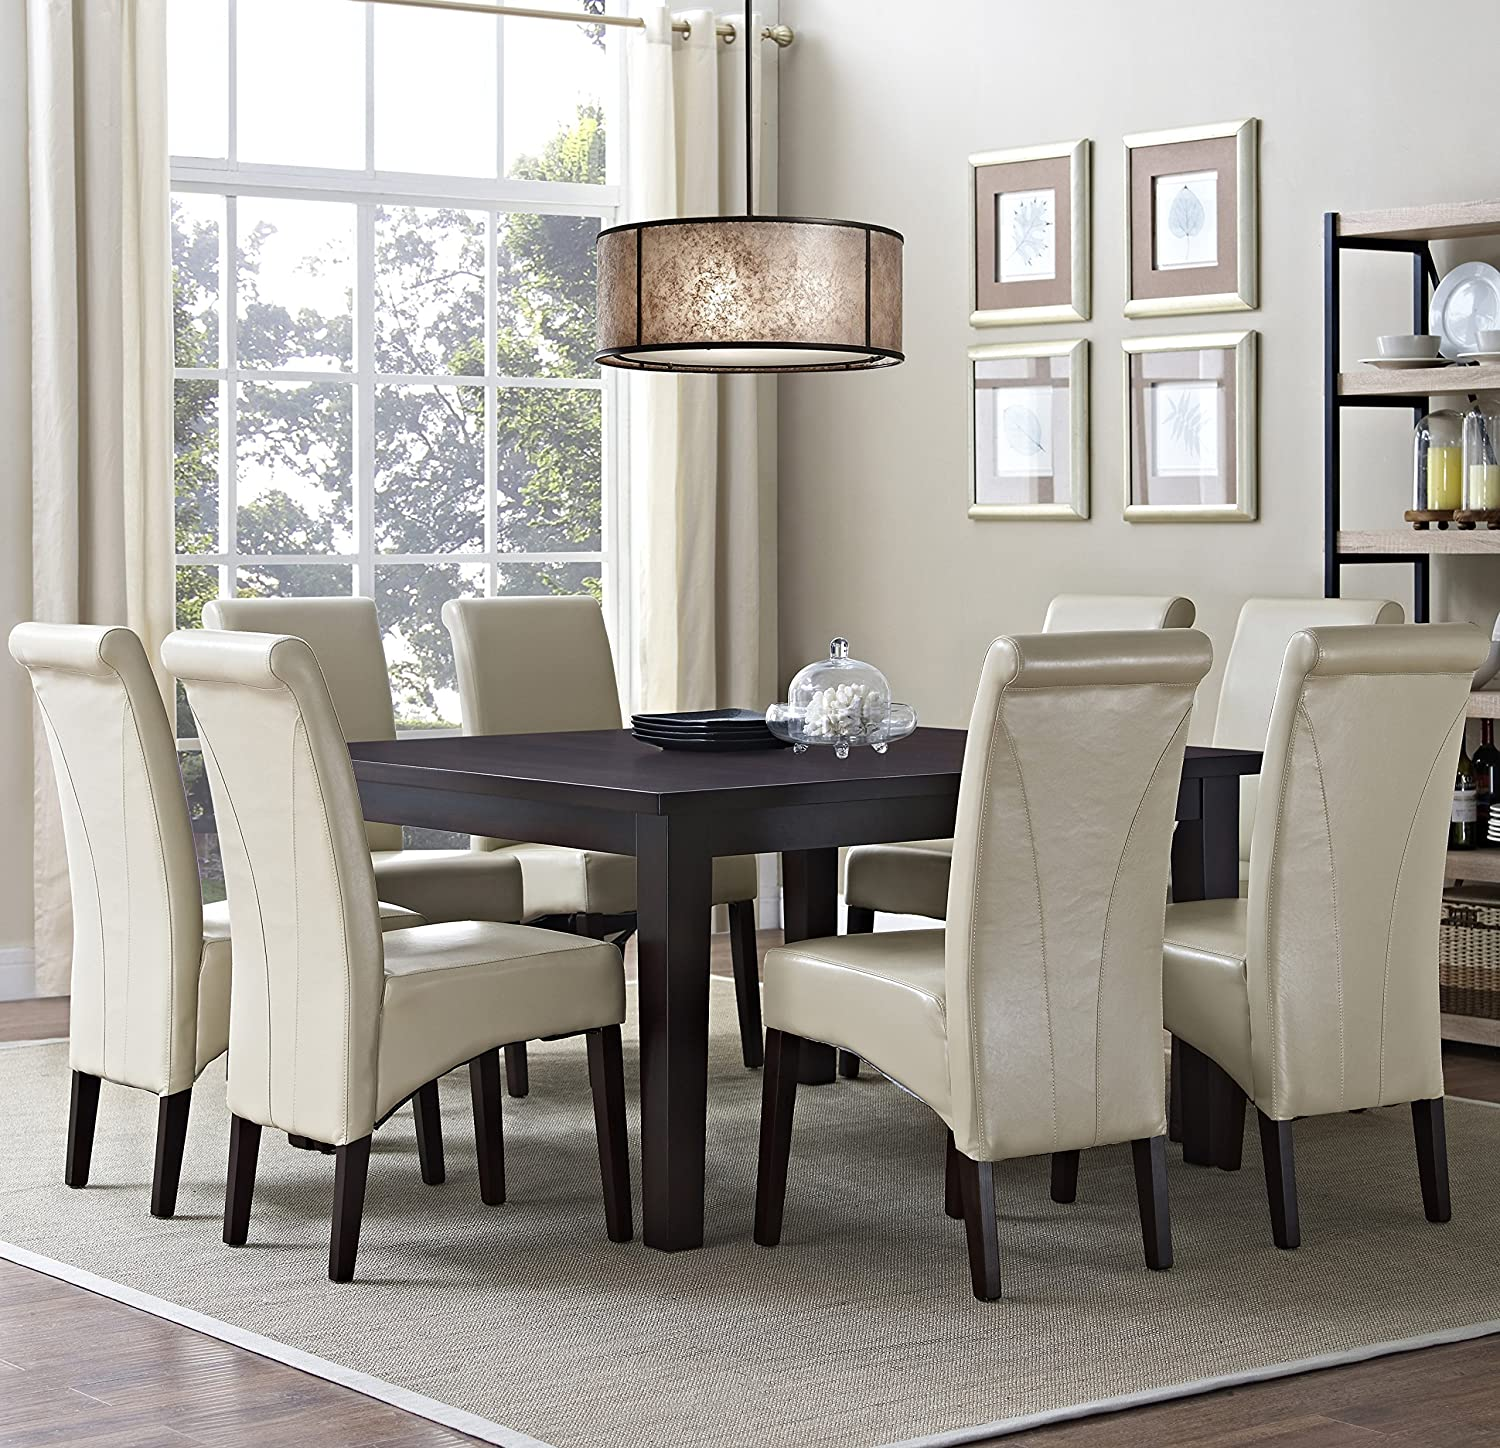 amazon com simpli home 9 piece avalon dining set satin cream amazon com simpli home 9 piece avalon dining set satin cream kitchen dining